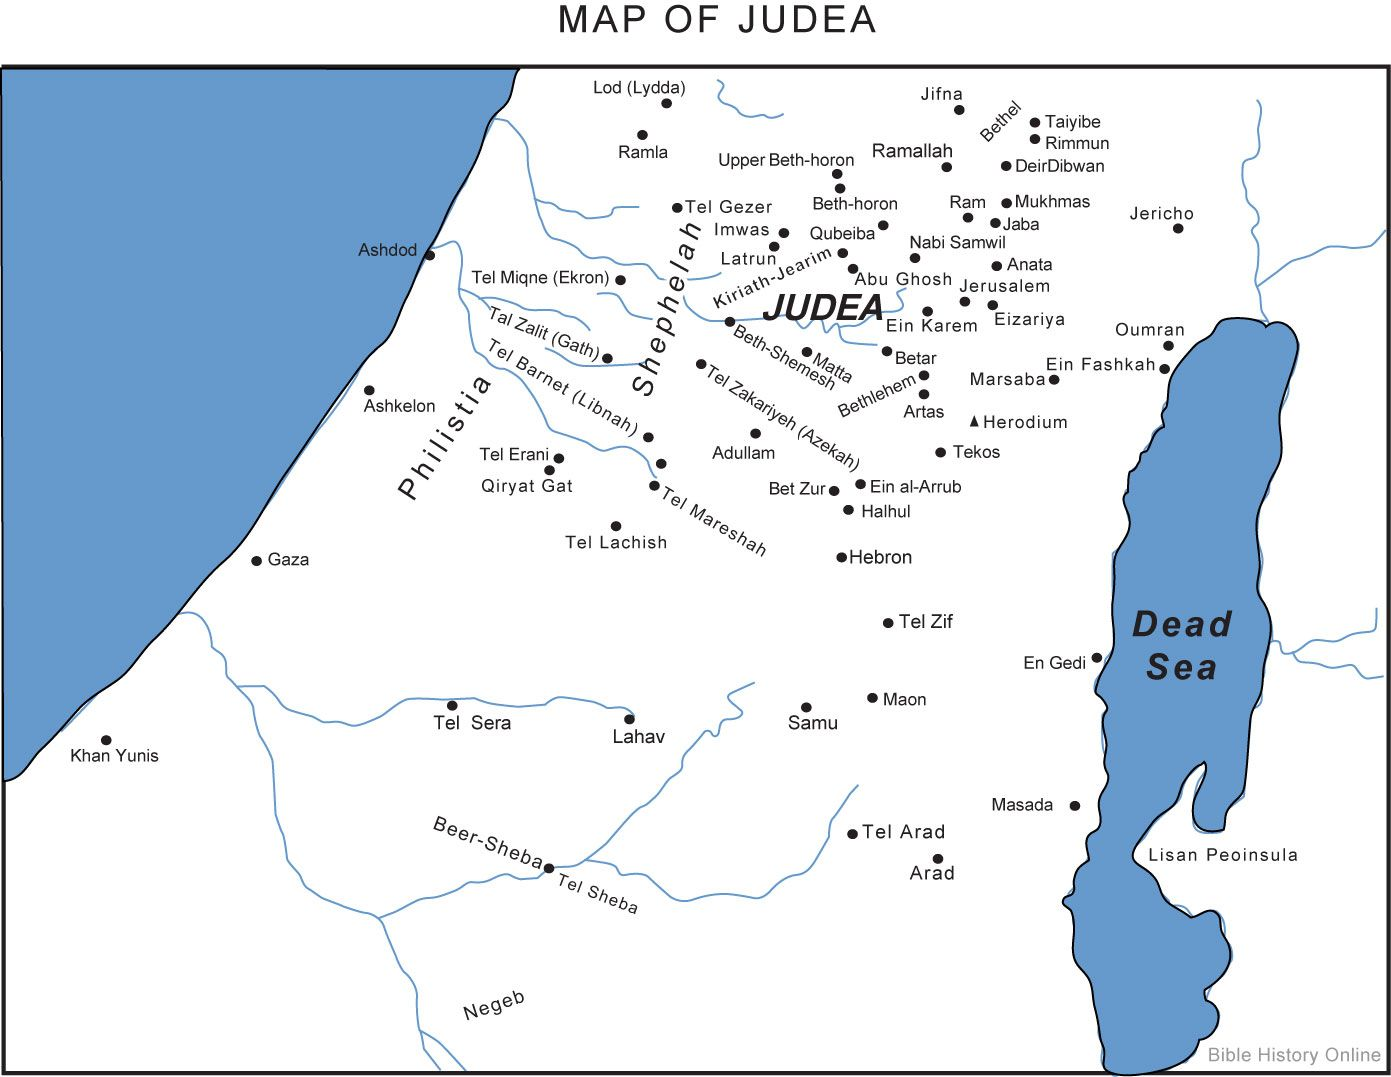 Map of world mythology map of judea maps pinterest israel map of world mythology map of judea gumiabroncs Choice Image